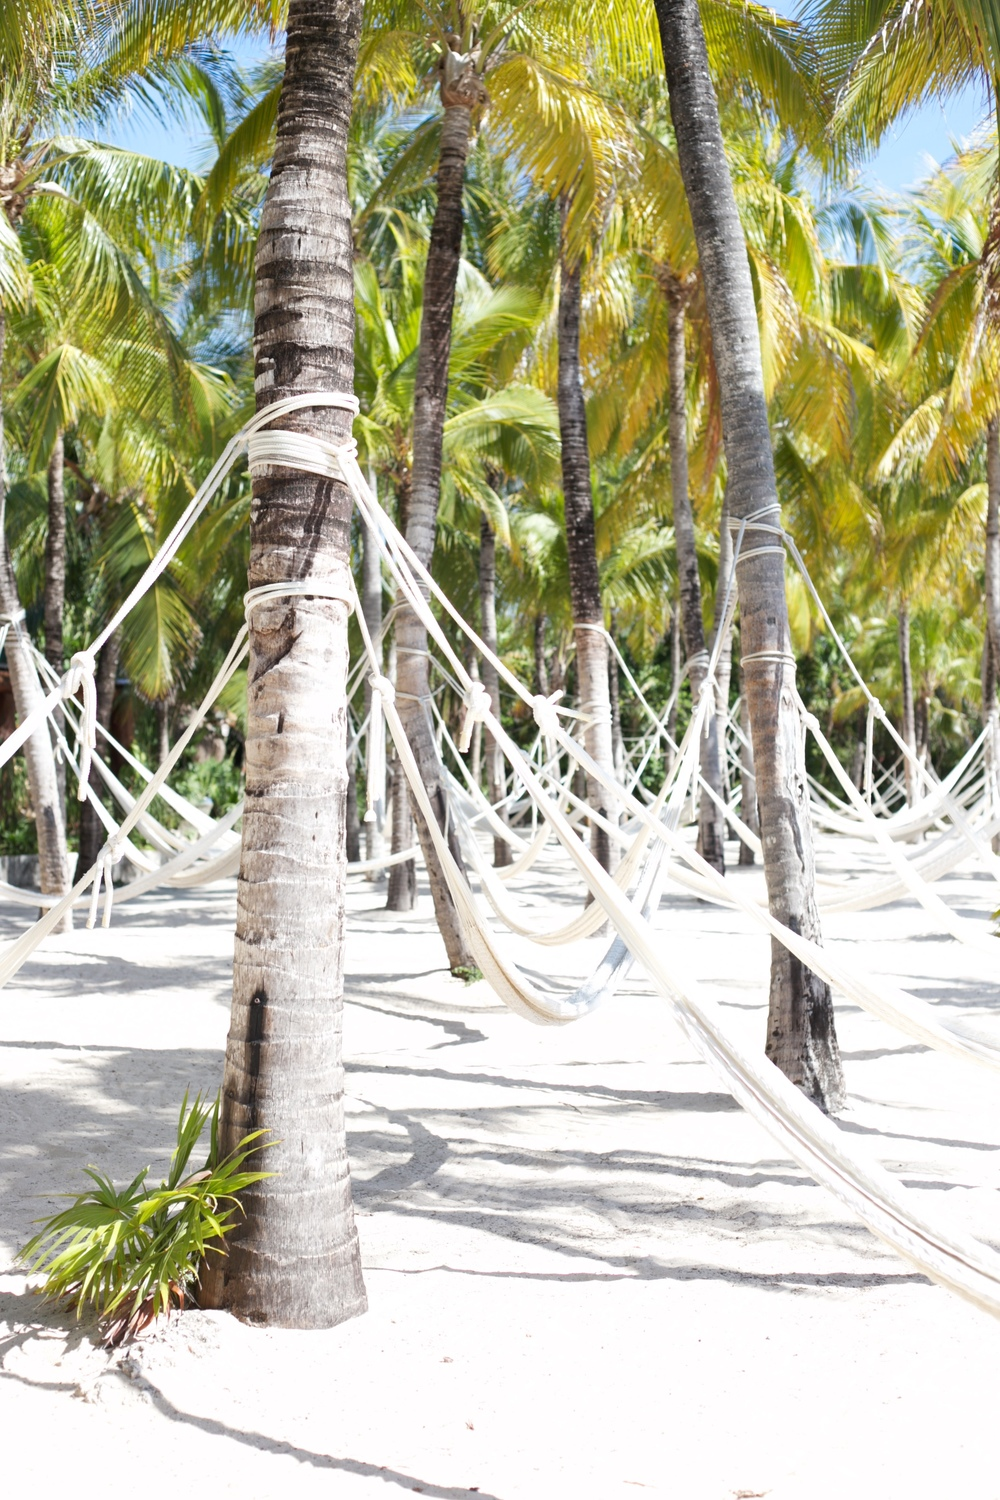 Hammocks on palm trees - at Xel Ha.